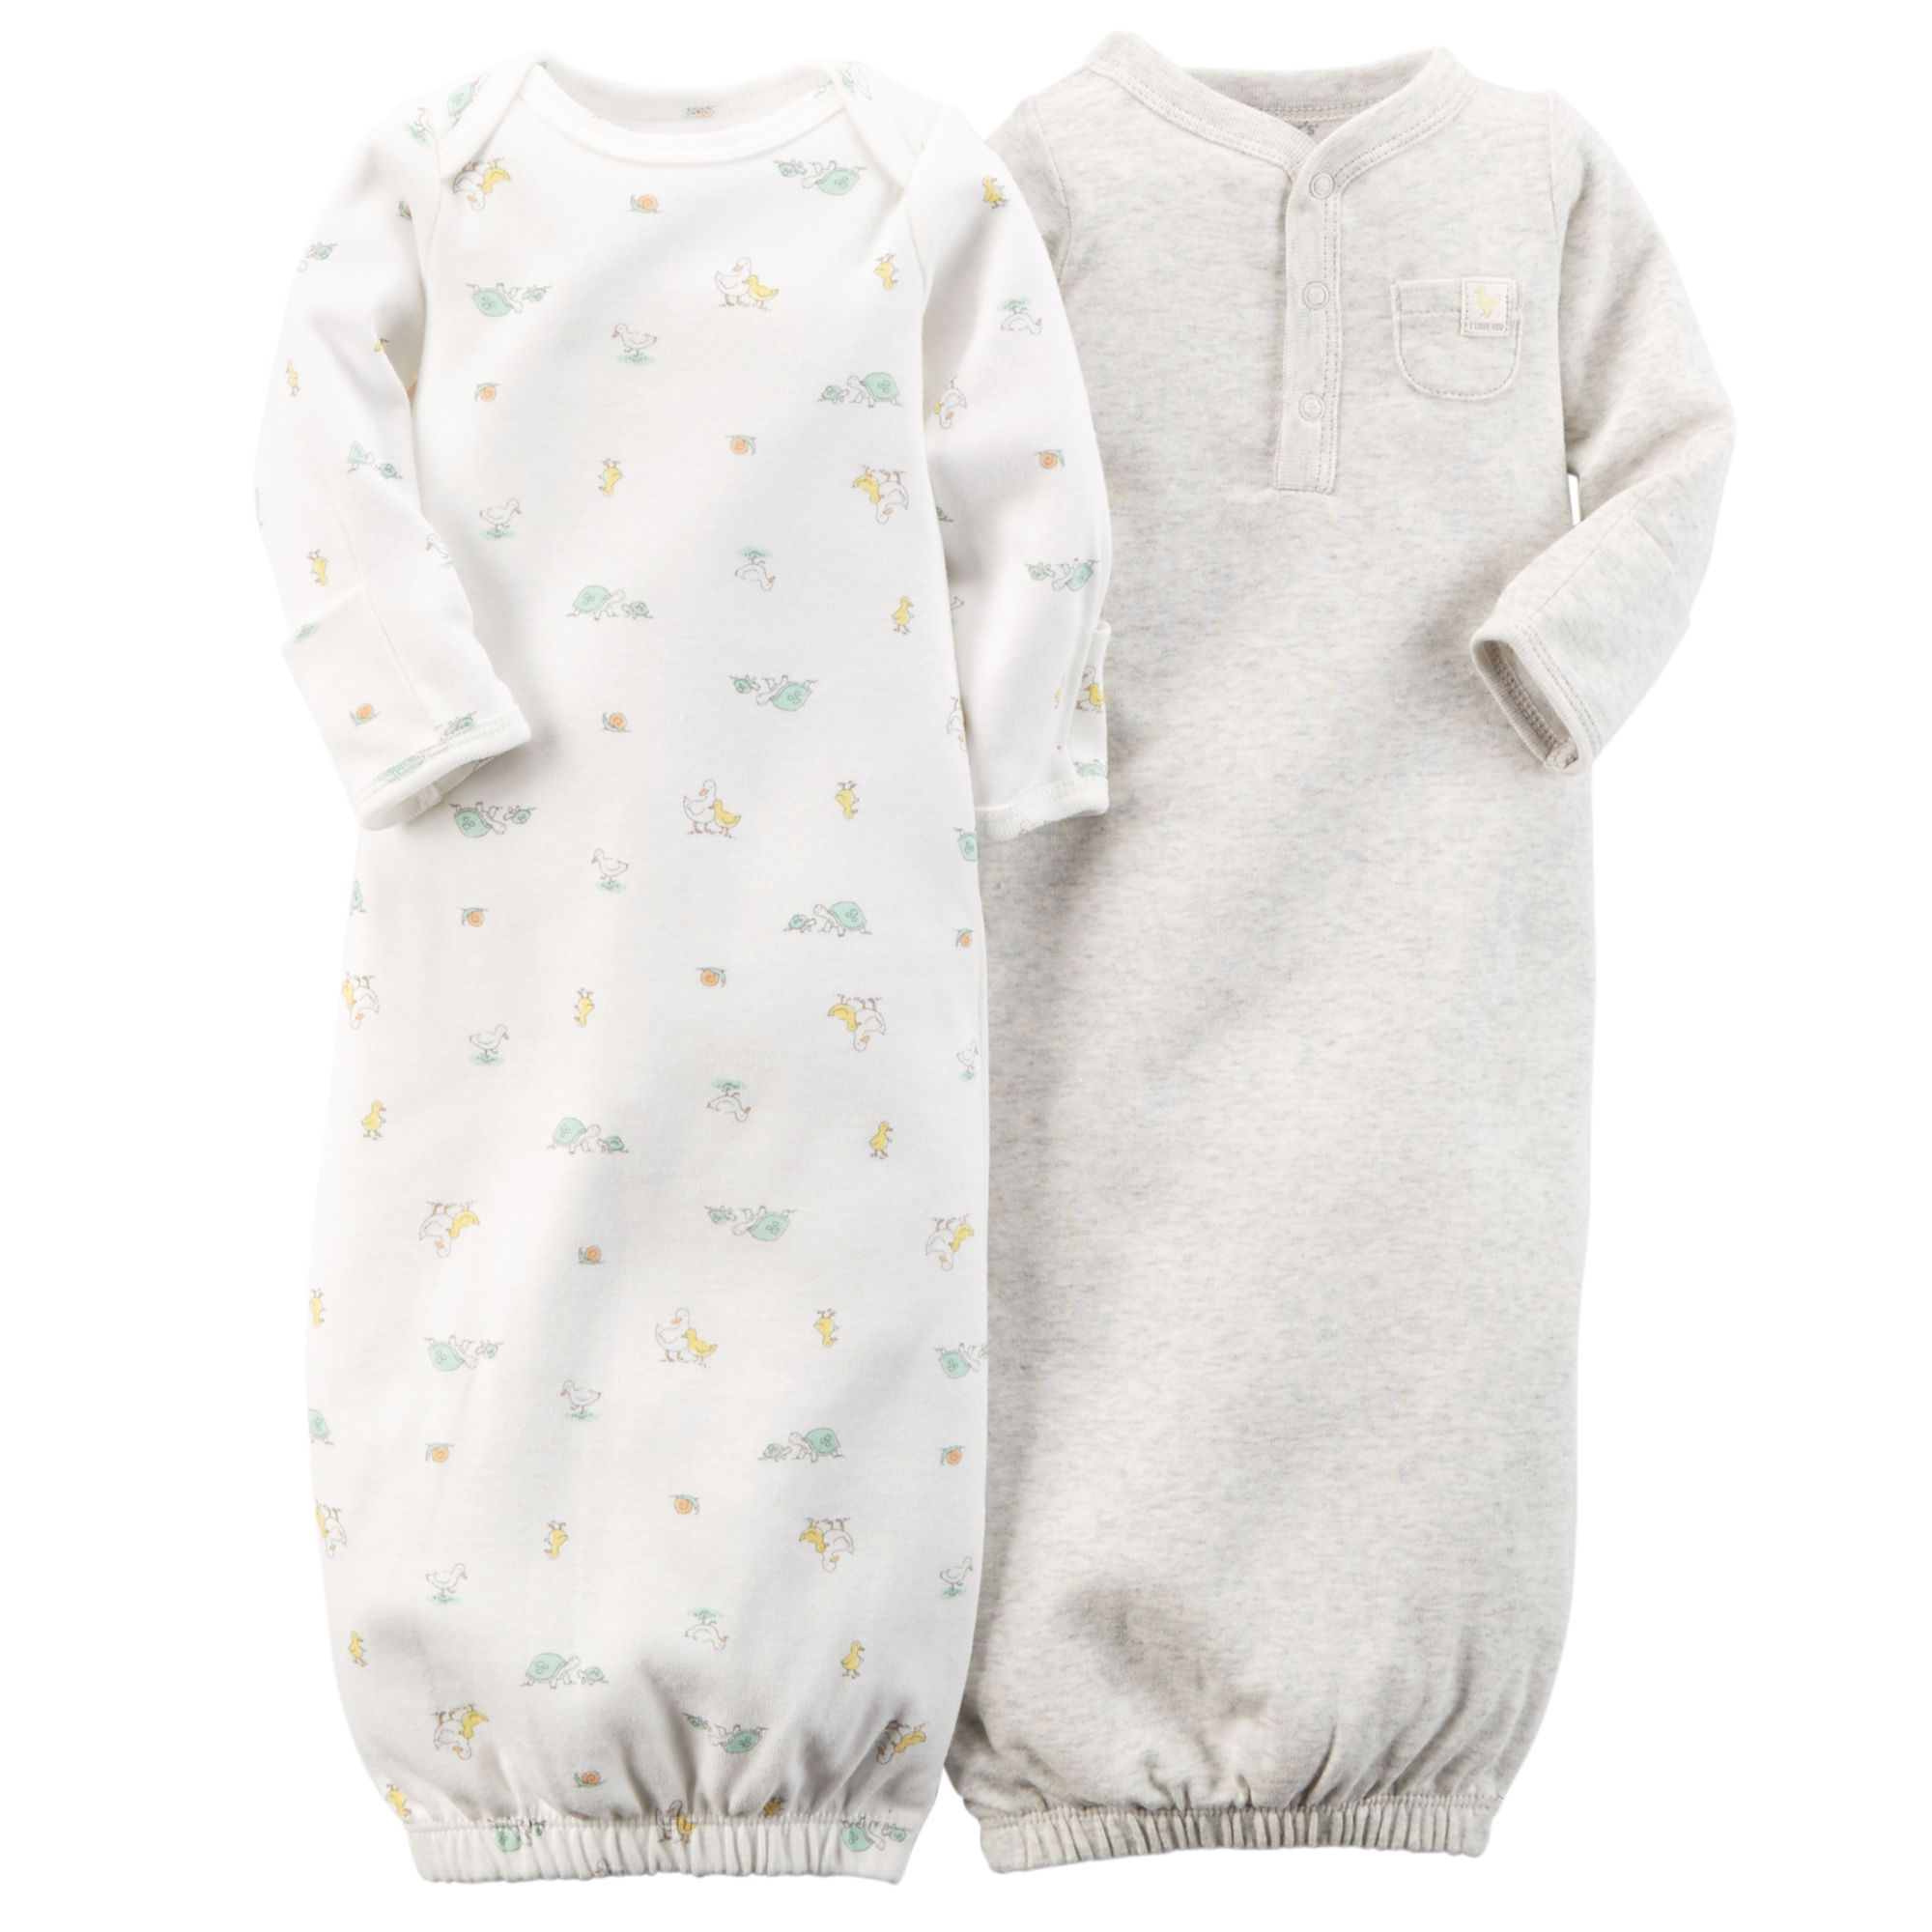 2-Pack Sleeper Gowns $12.00 | Baby & Toddler Gifts | Pinterest ...